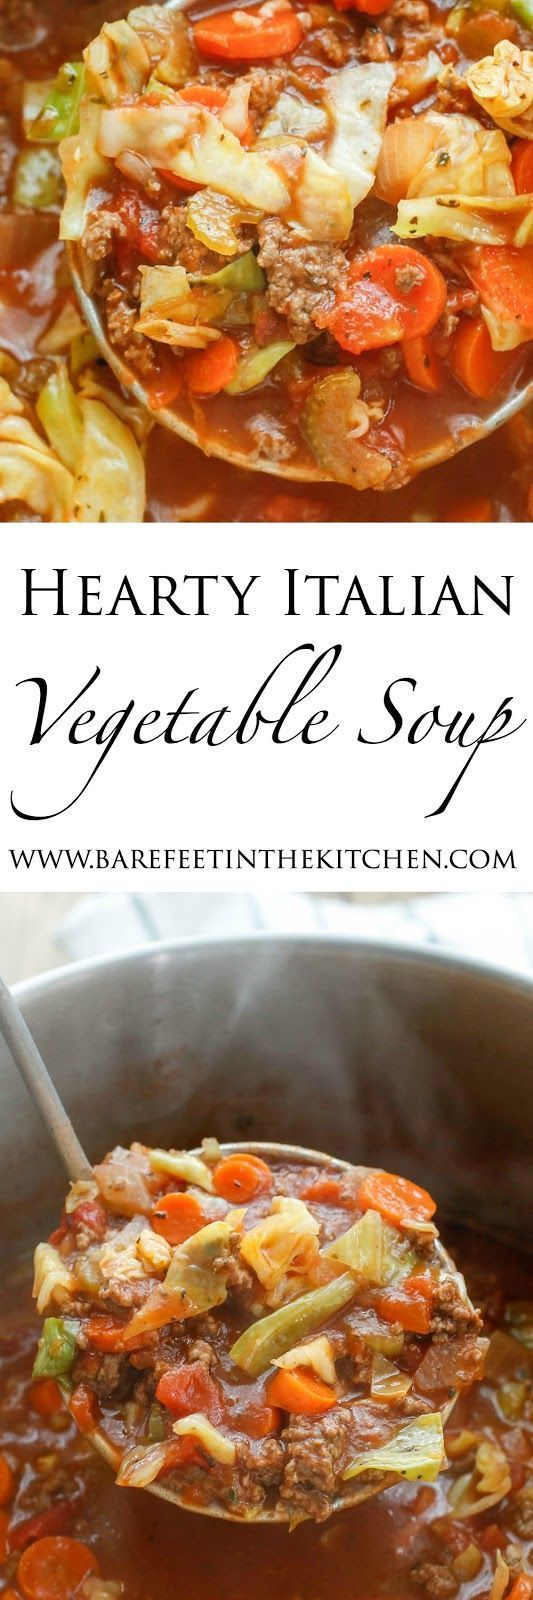 Hearty Italian Vegetable Beef Soup – KetosisDiet.net